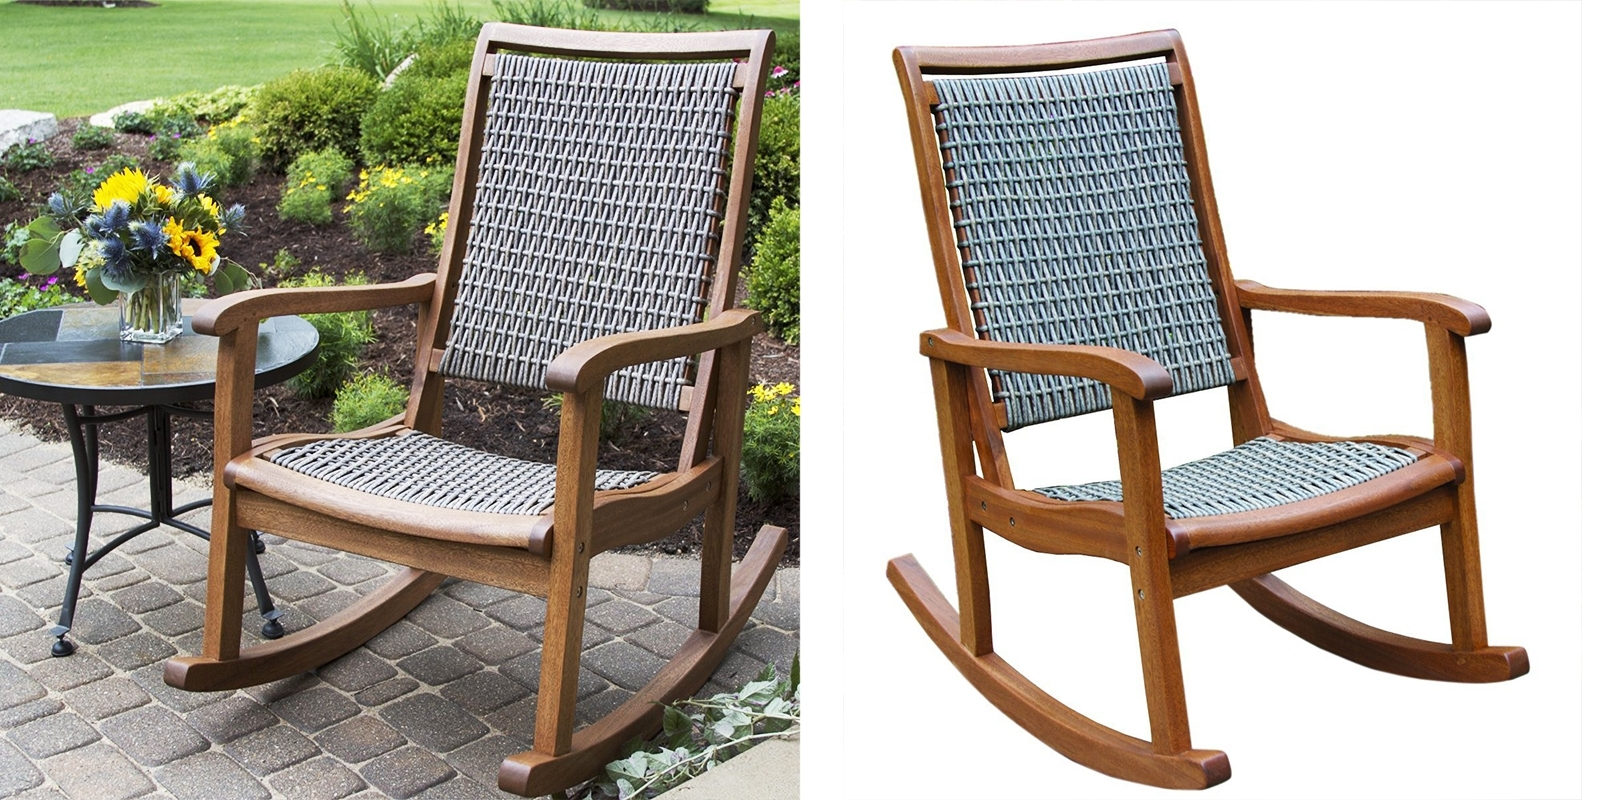 Most Up To Date Resin Wicker And Eucalyptus Rocking Chair — Homebnc With Resin Wicker Patio Rocking Chairs (View 14 of 20)